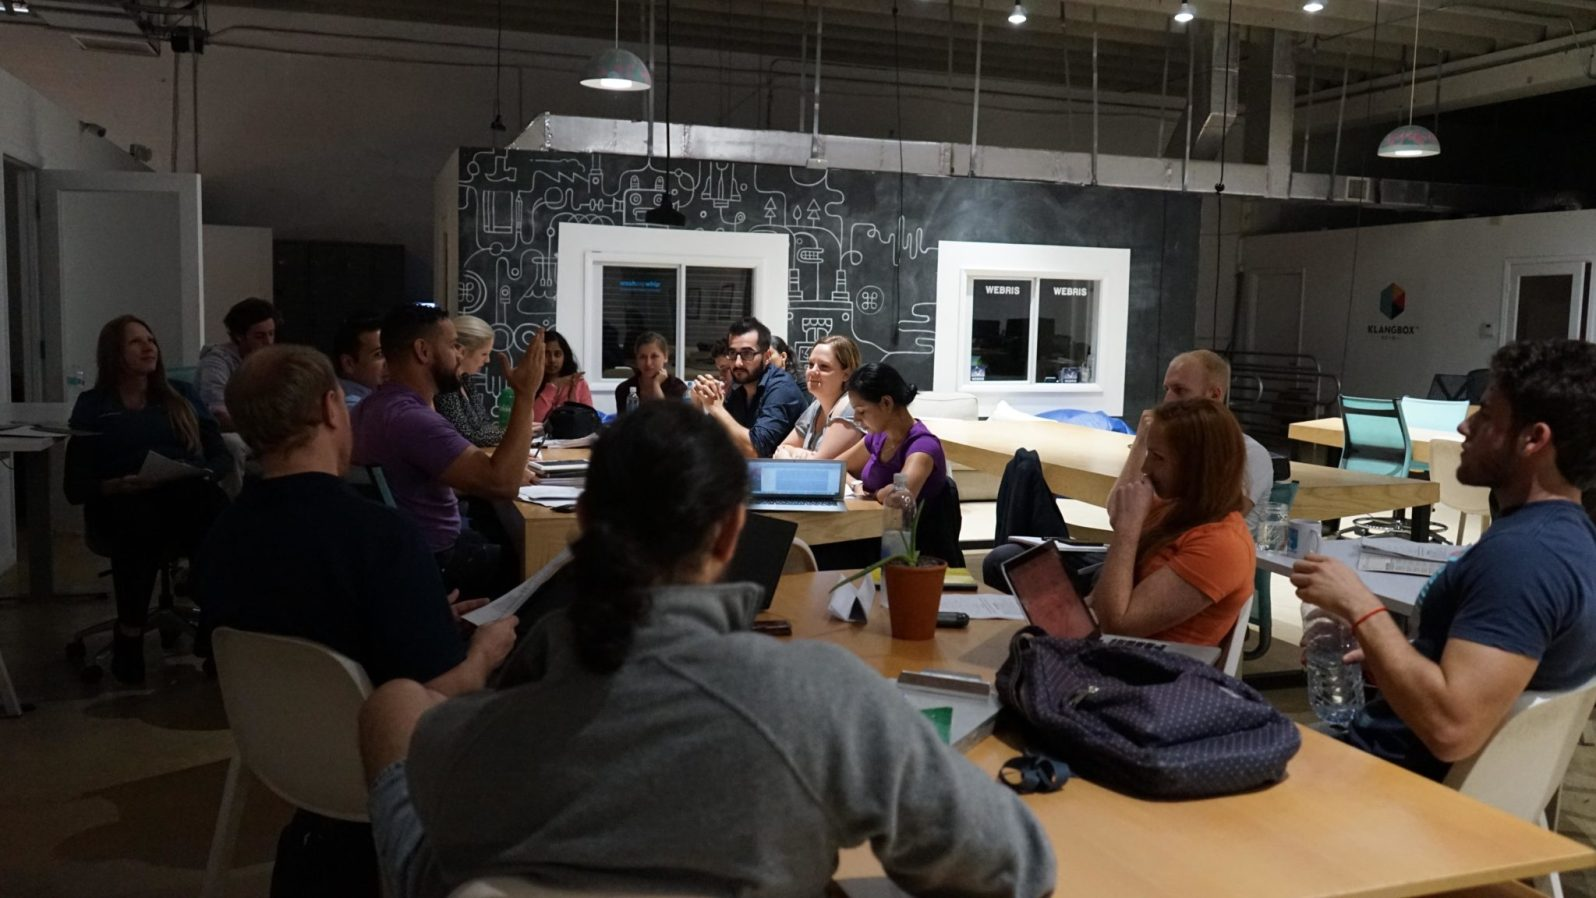 The whole group meets at The Lab every Monday from 7 to 9 p.m. (Credit: Roshan Nebhrajani/The New Tropic)